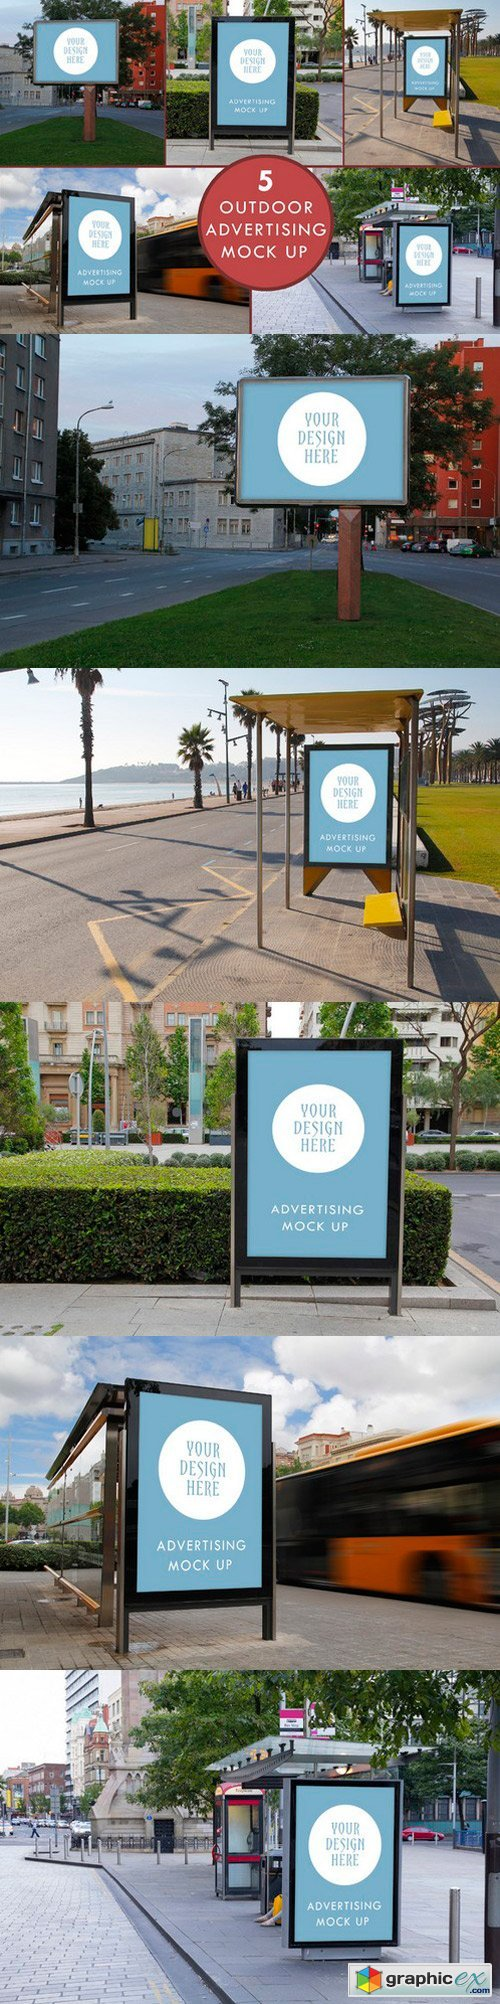 Advertising outdoor mock up